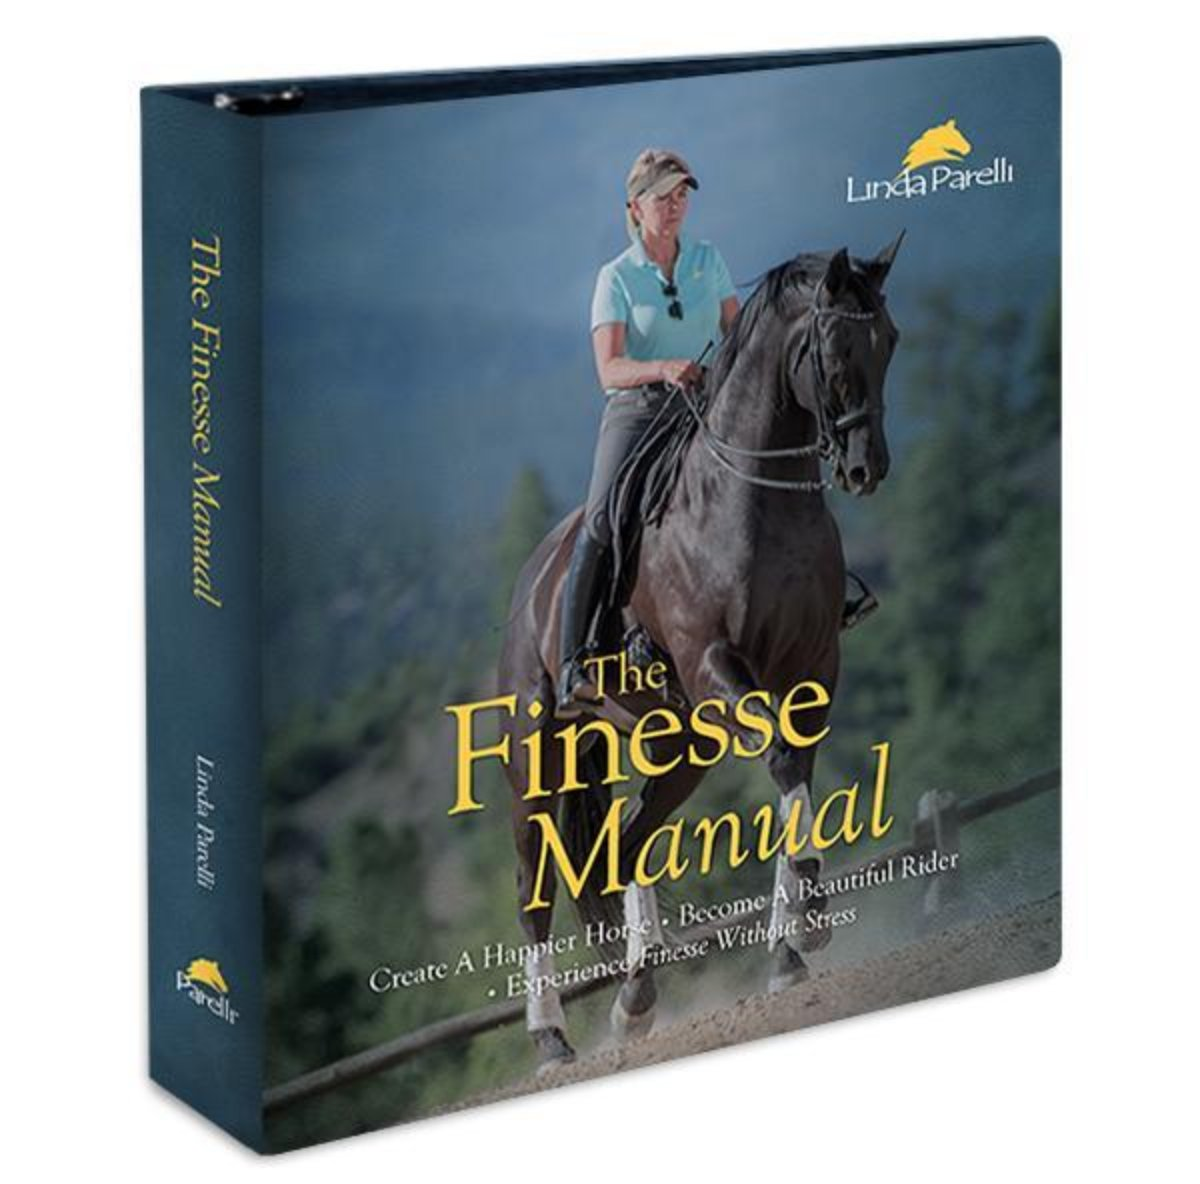 The Finesse Manual